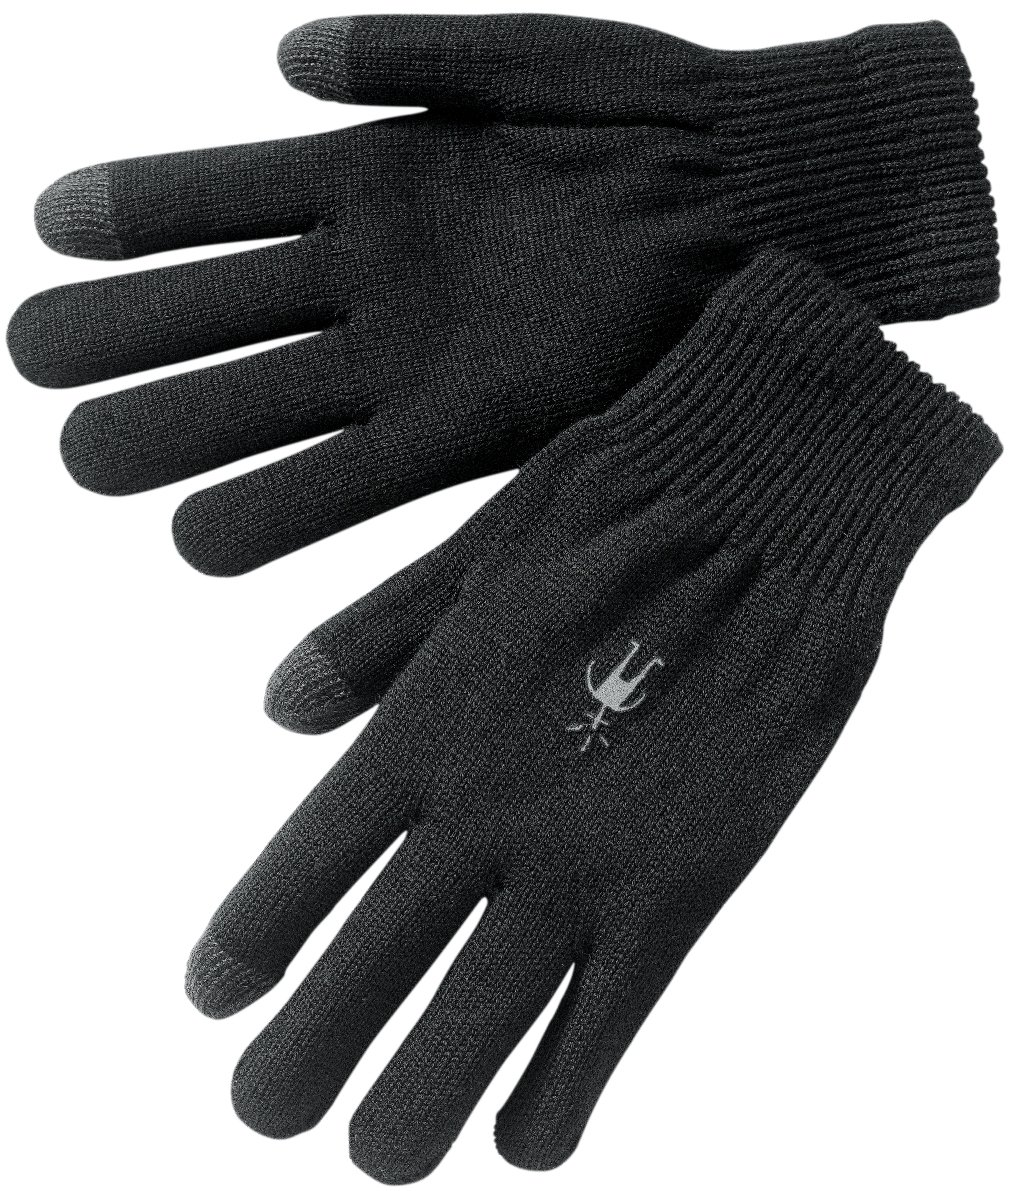 Mens leather gloves size 2x -